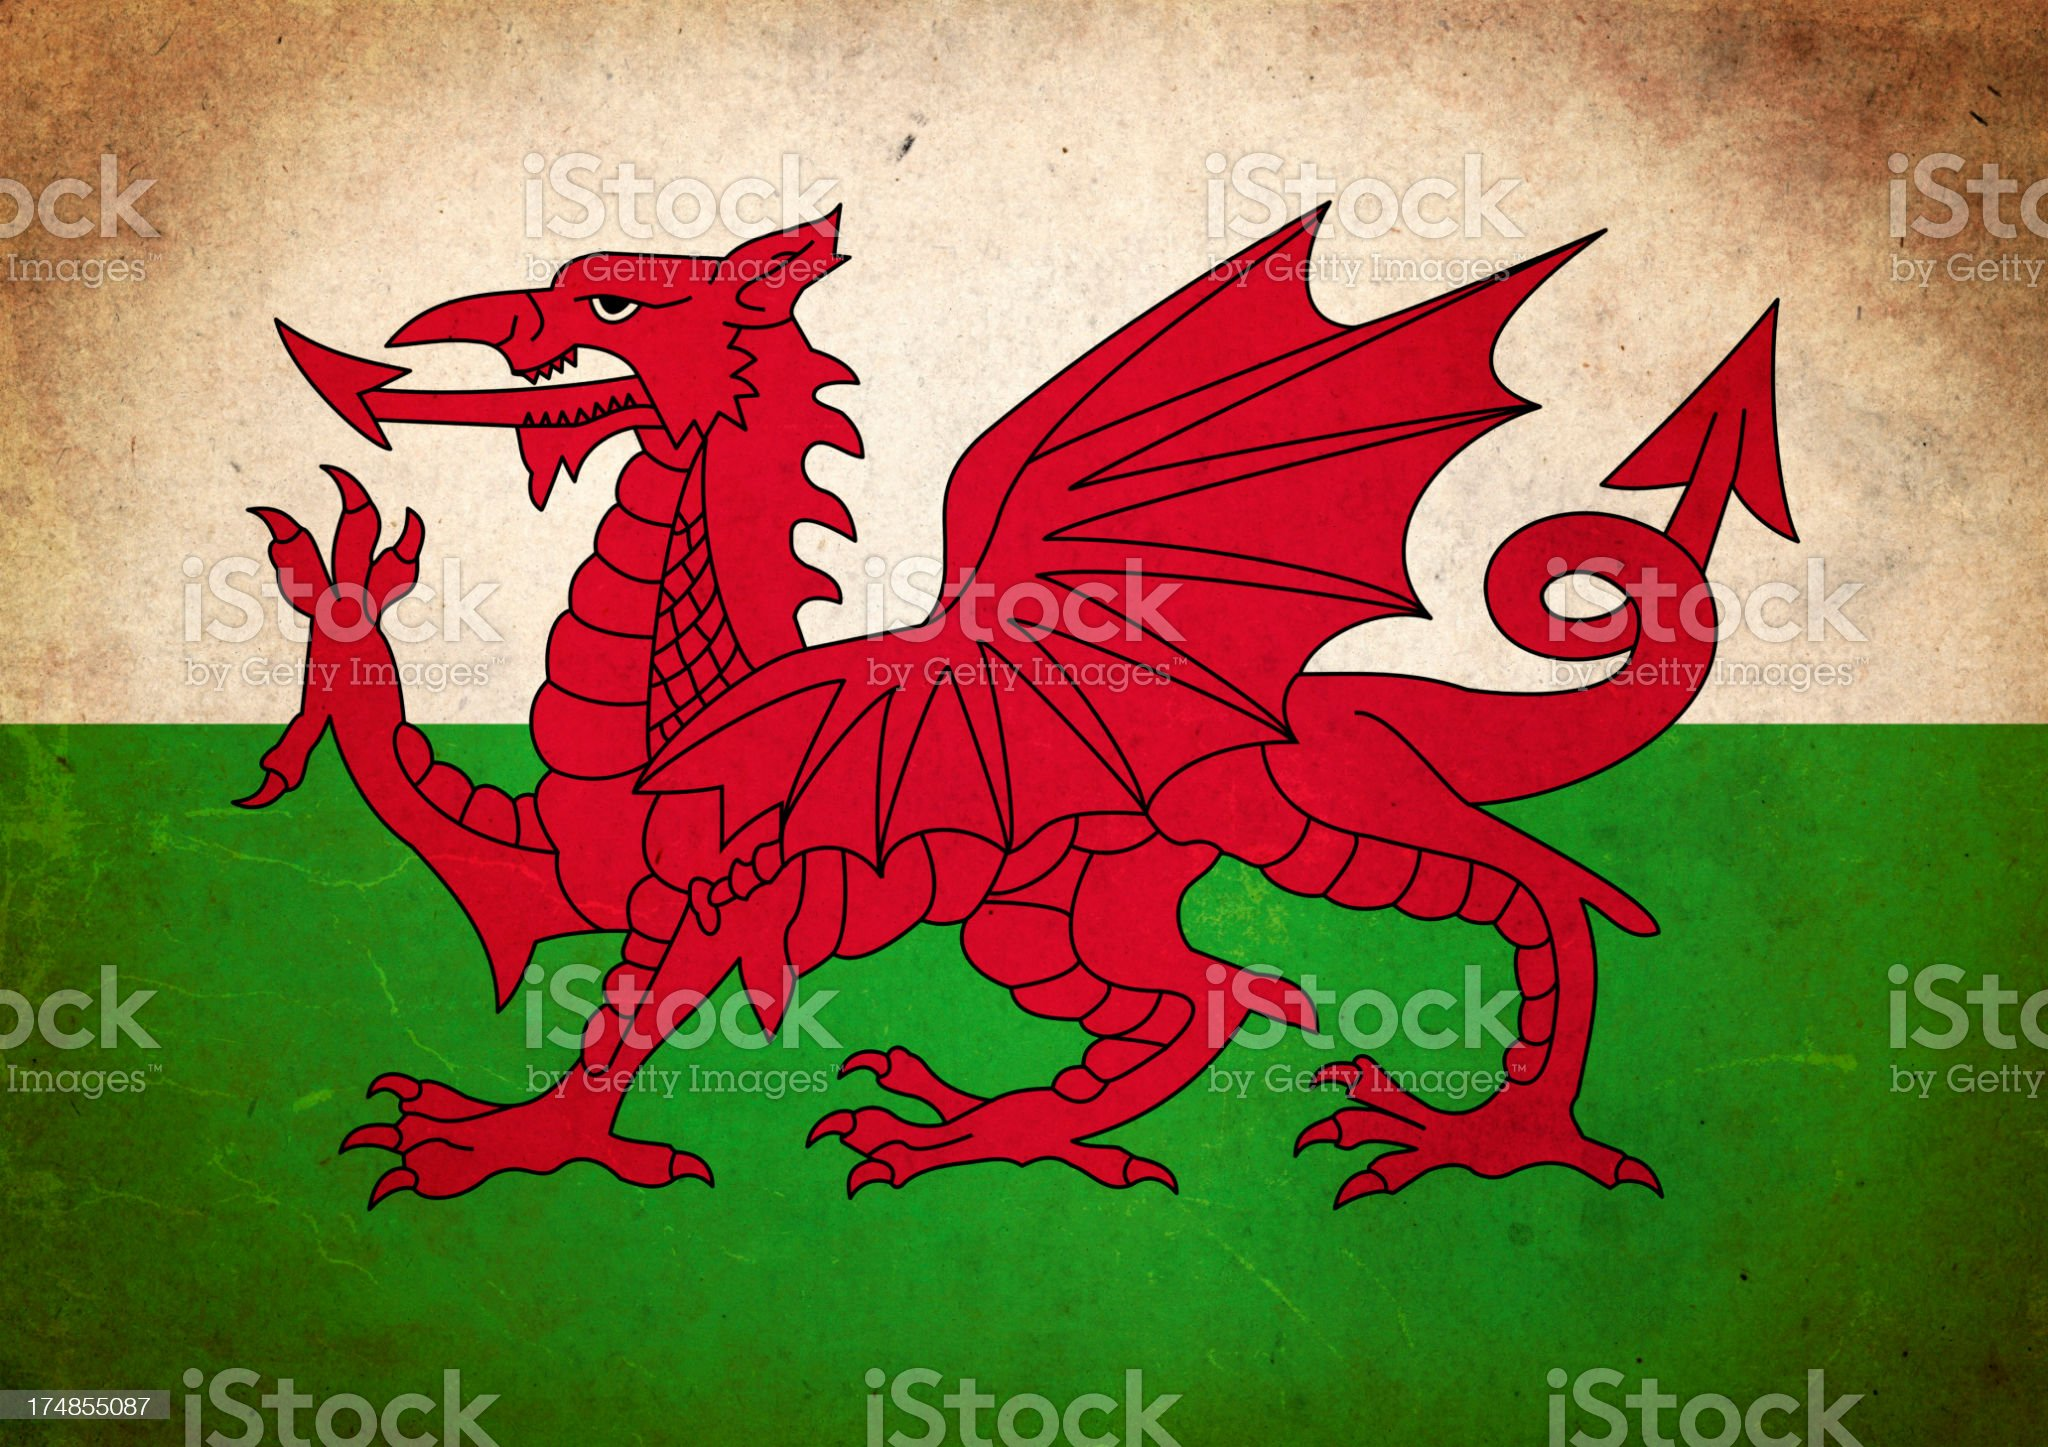 Grunge Flag of Wales royalty-free stock photo